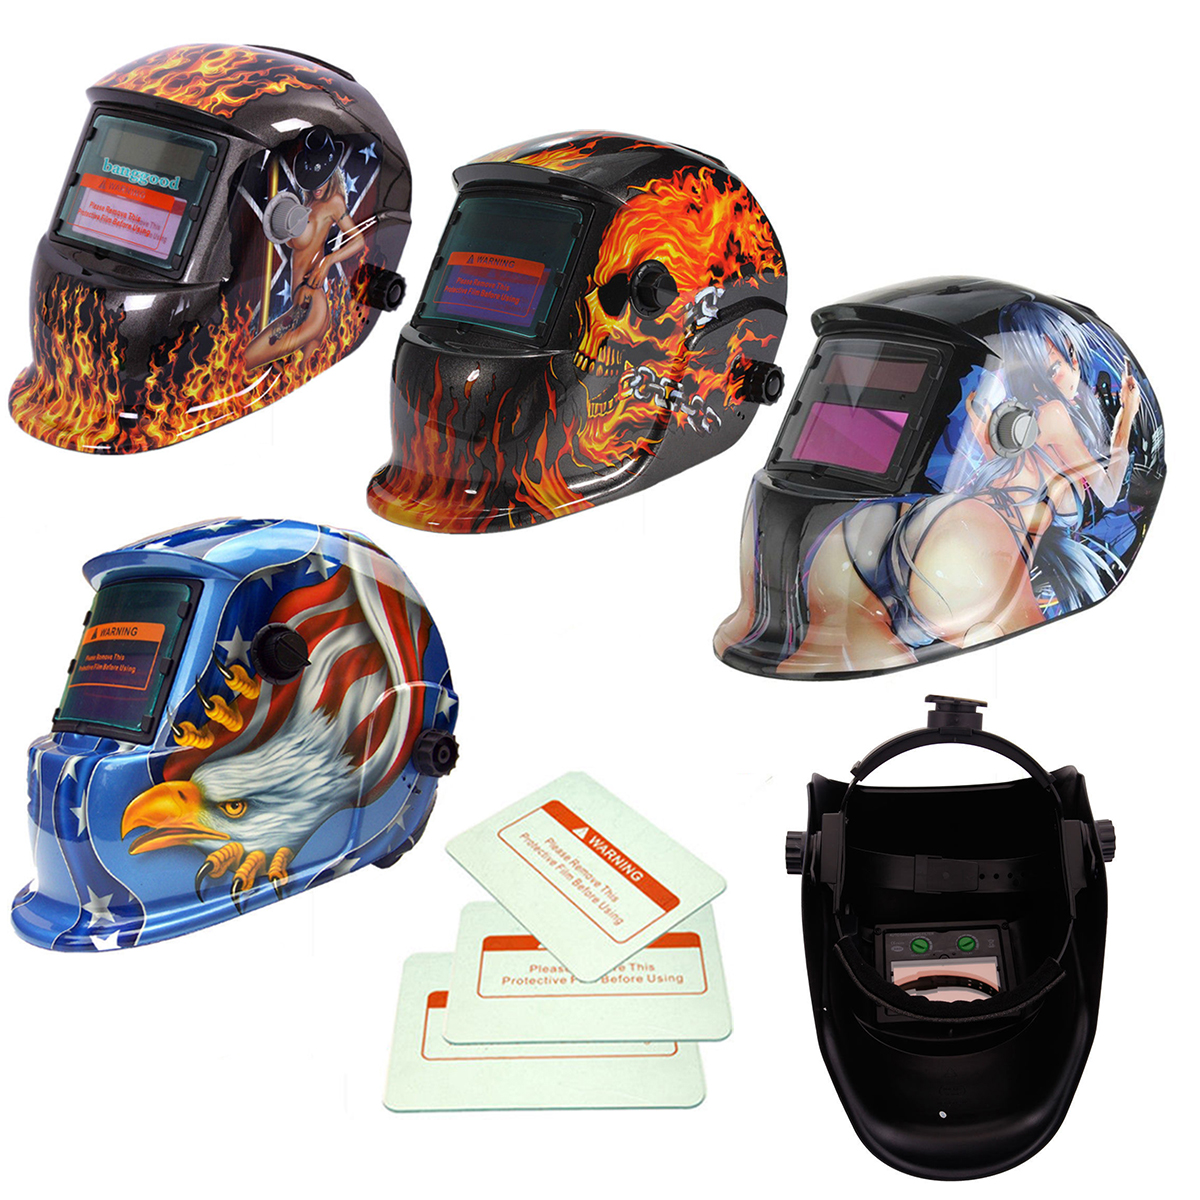 Ossieao New Solar Auto Darkening Welding Helmet + 3 Lens Tig Mask Grinding Welder Mask solar auto darkening electric wlding mask helmet welder cap welding lens eyes mask for welding machine and plasma cutting tool